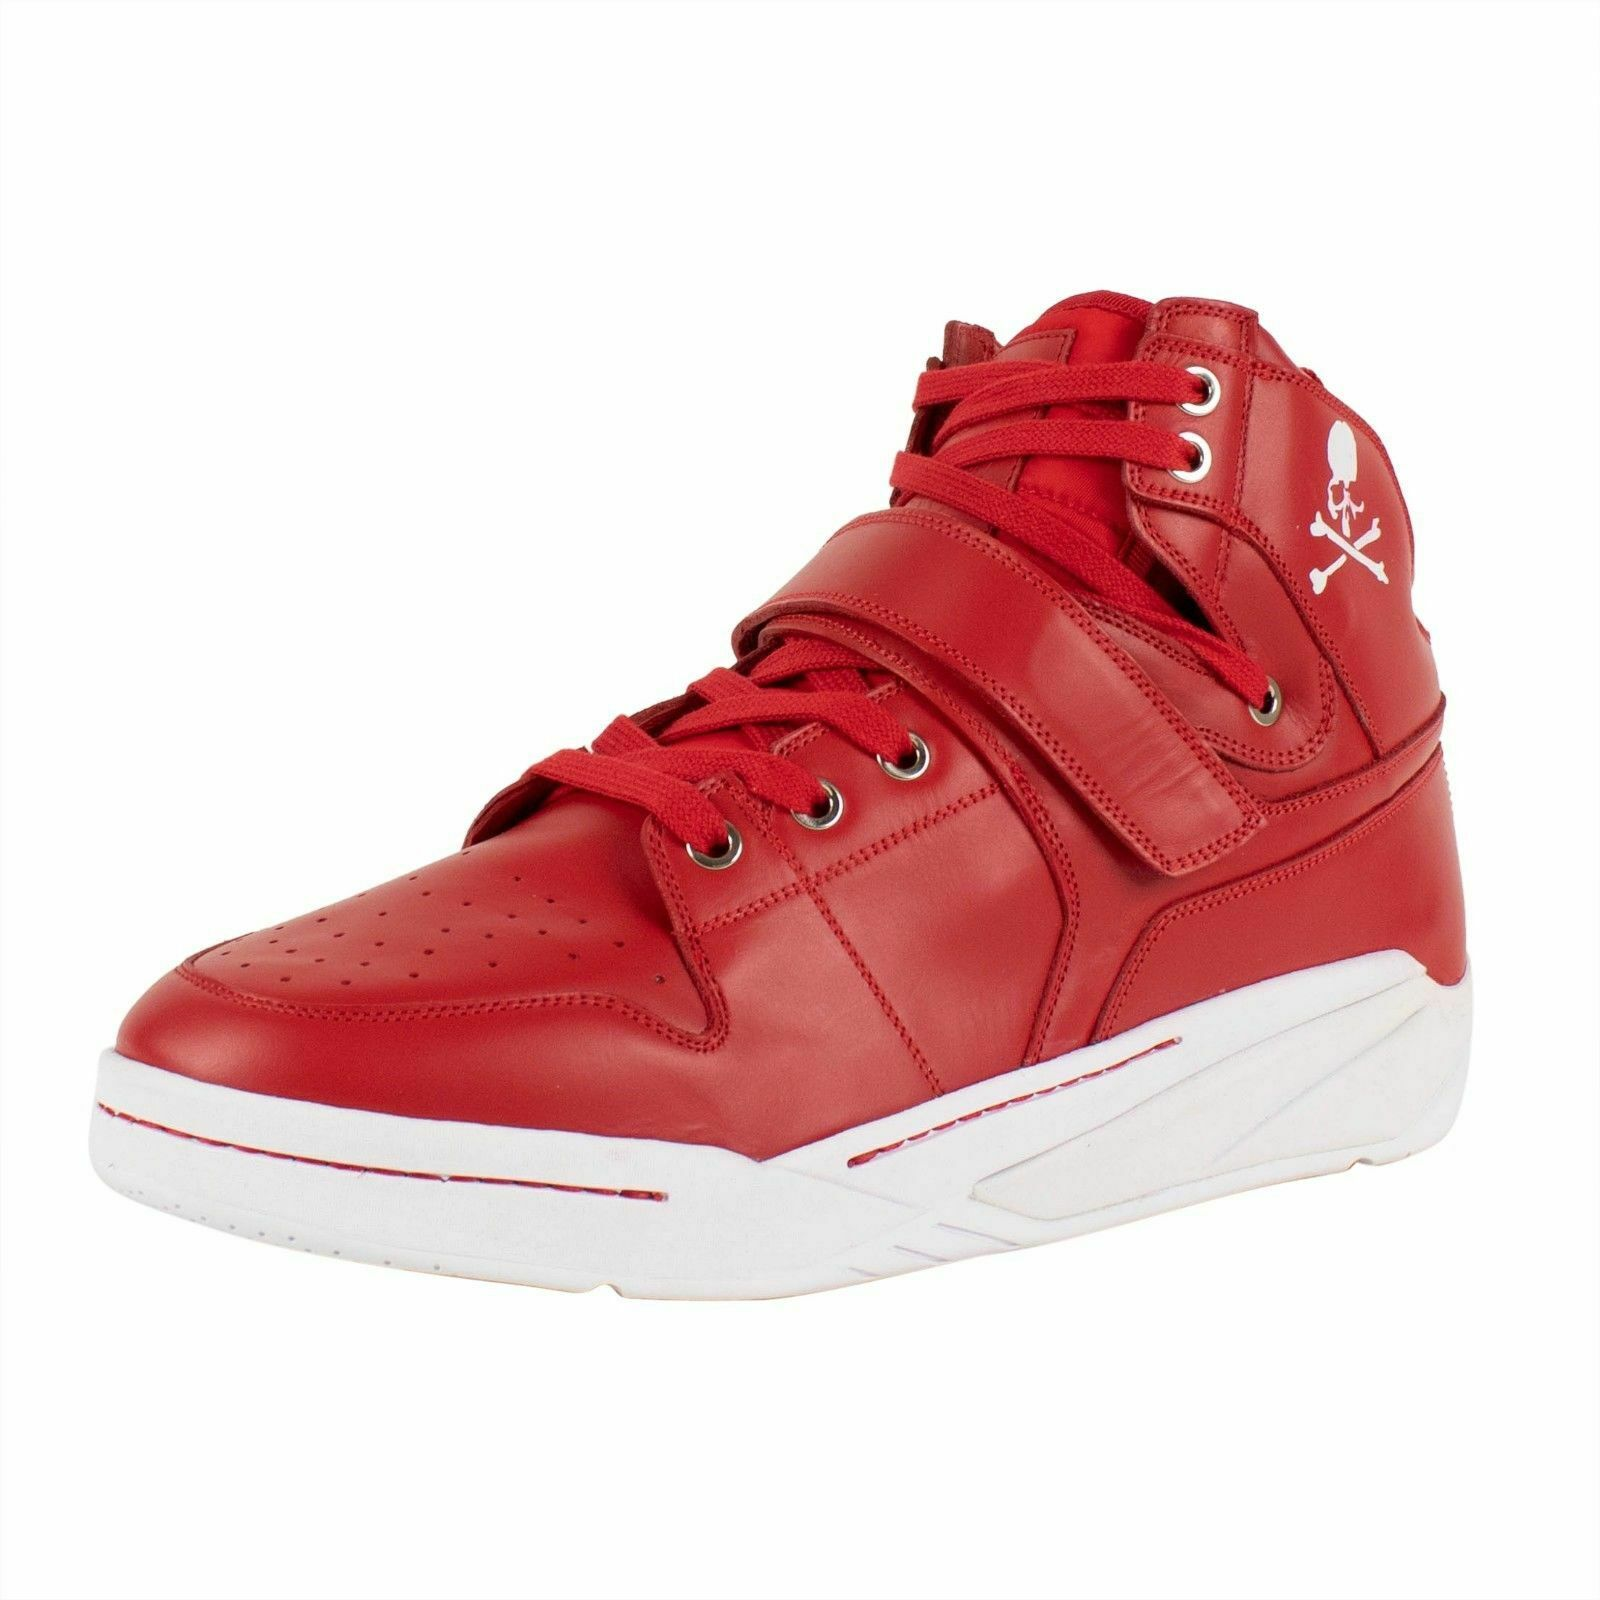 NIB MASTERMIND SEARCHNDESIGN 'MMJ' Red Basket Sneakers shoes Size 10 43